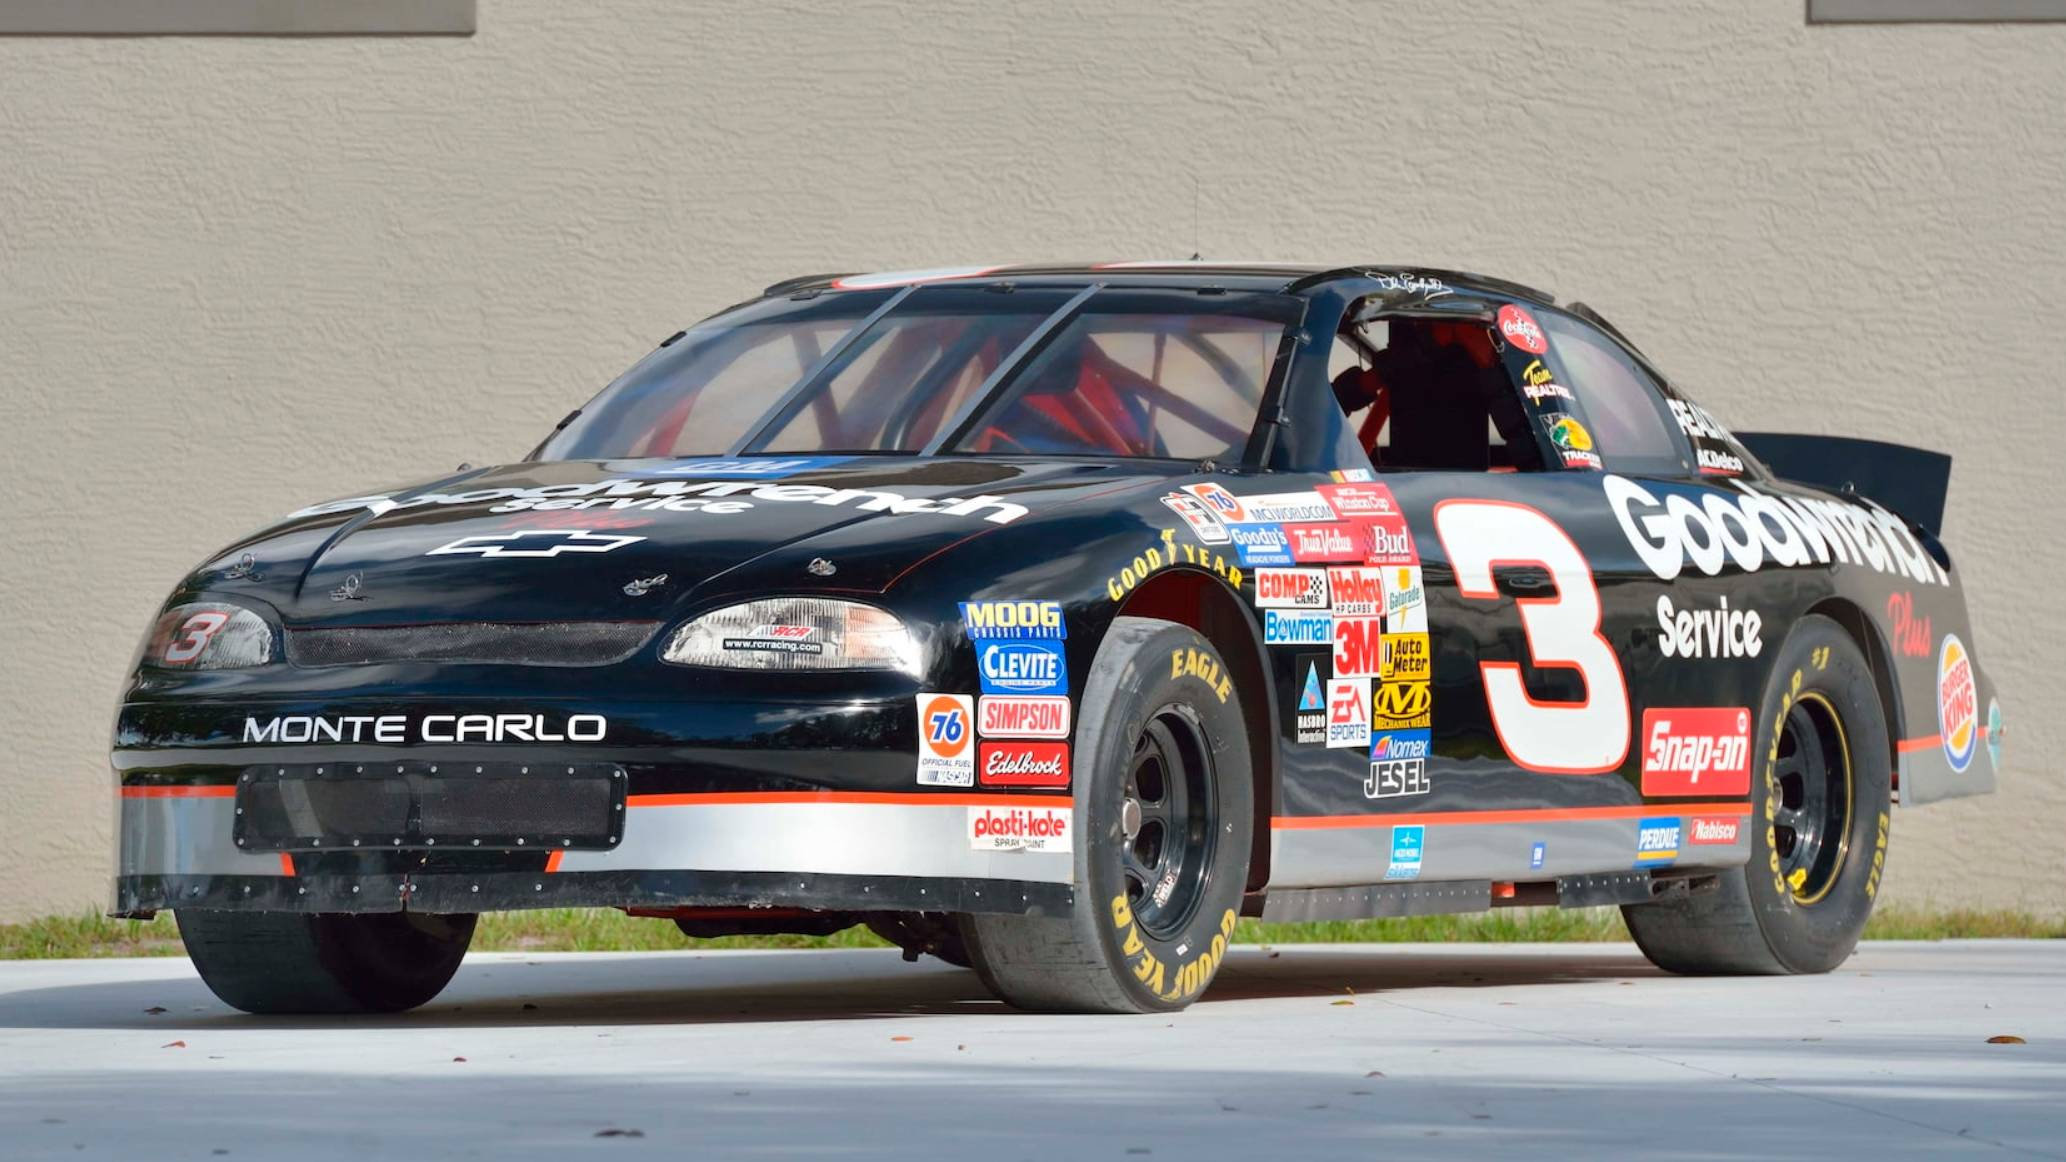 1991 Dale Earnhardt - Richard Childress Racing chassis